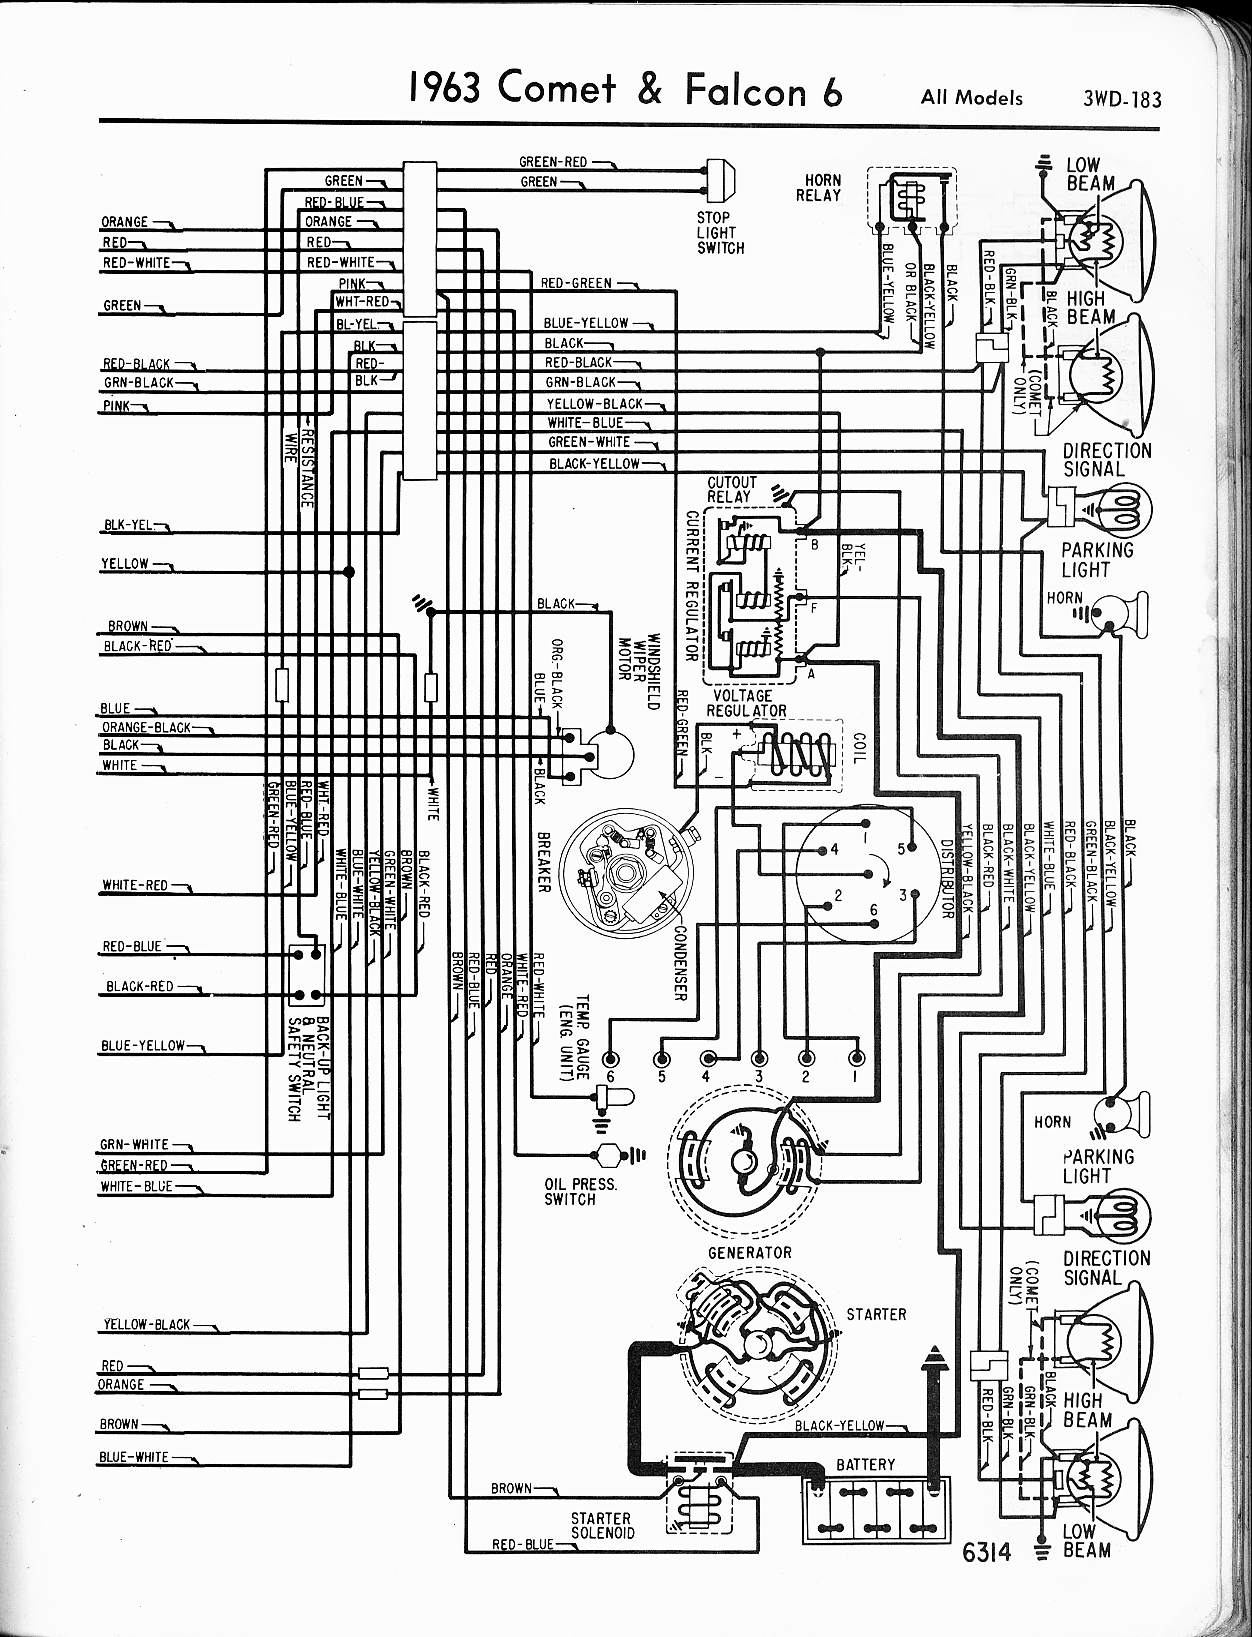 1979 ranchero engine diagram wiring diagram 1979 ford ranchero wiring diagram wiring diagram sys 1979 ranchero engine diagram source 78 ranchero 500